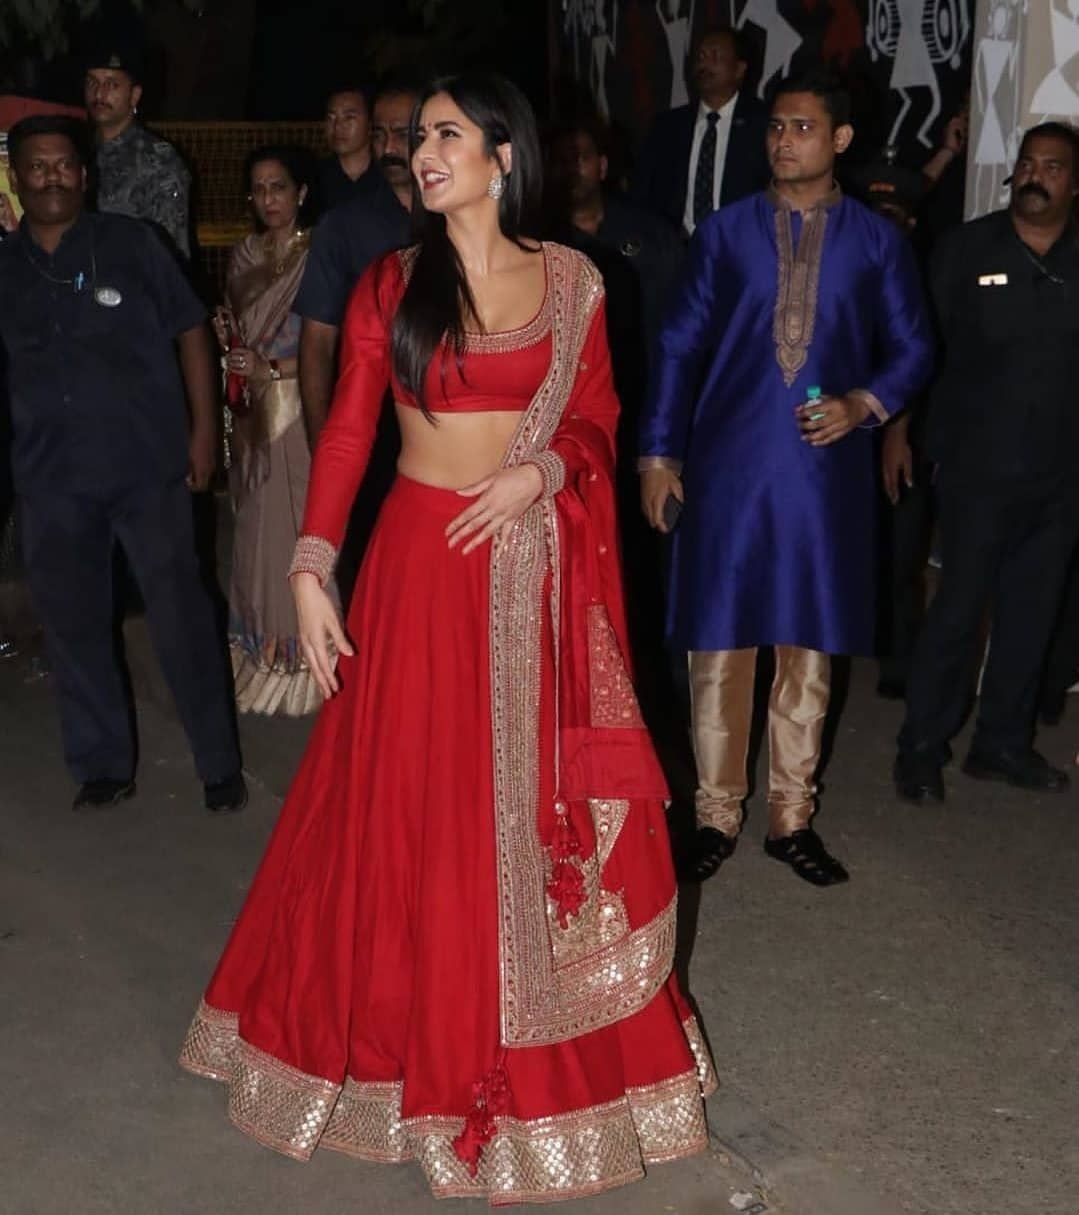 Katrina Kaif Looks All Elegant As Opts Bling Red Bridal Lehenga For Diwali Celebration Hungryboo In 2020 Bridal Lehenga Red Diwali Outfits Traditional Indian Outfits